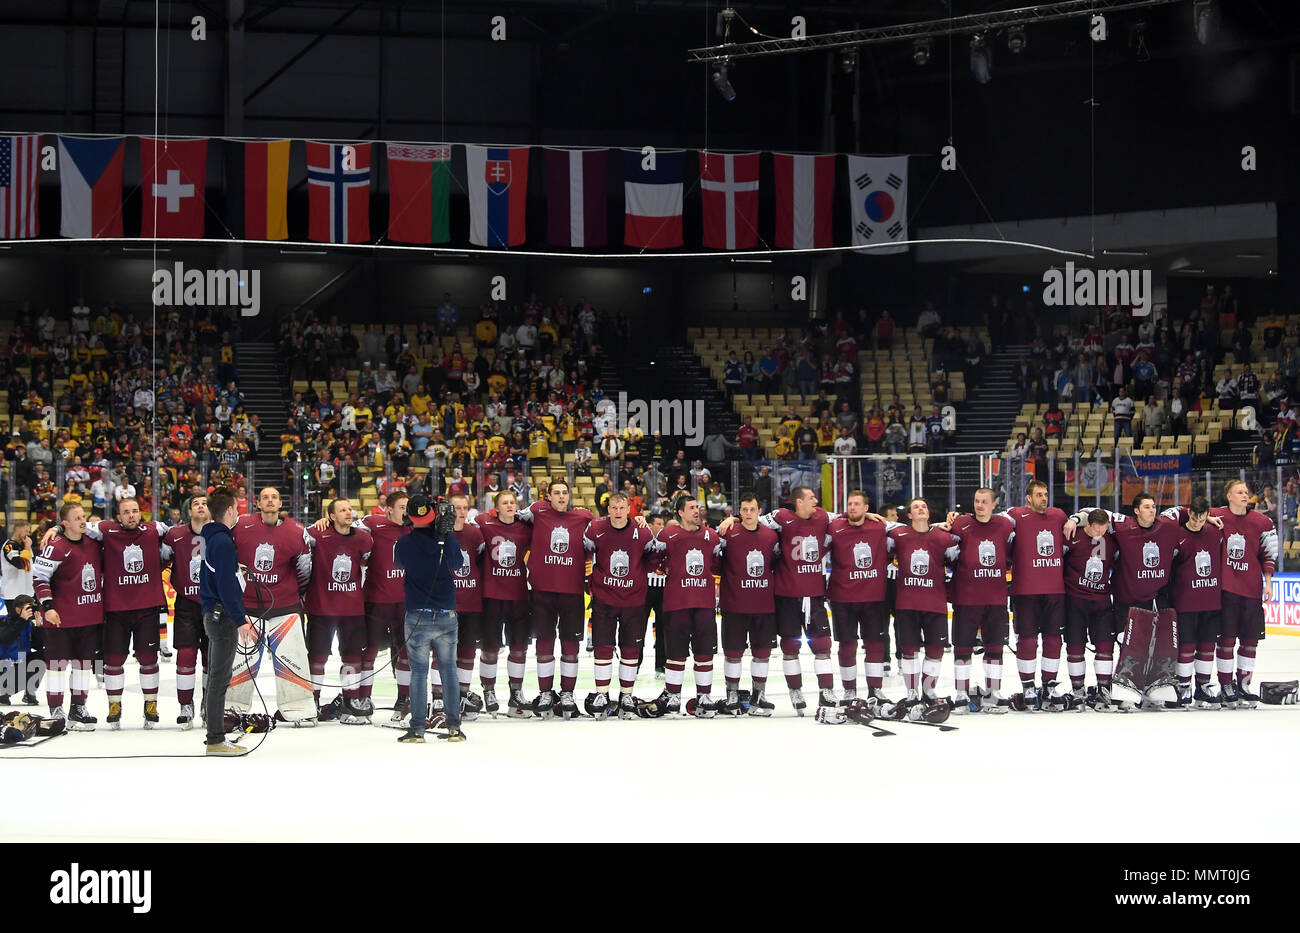 Herning, Denmark.. 12th May, 2018. Players of Team Latvia after the match between Latvia and Germany on 05/12/2018 in Herning, Denmark. (Photo by Marco Leipold/City-Press GbR) | usage worldwide Credit: dpa picture alliance/Alamy Live News Stock Photo